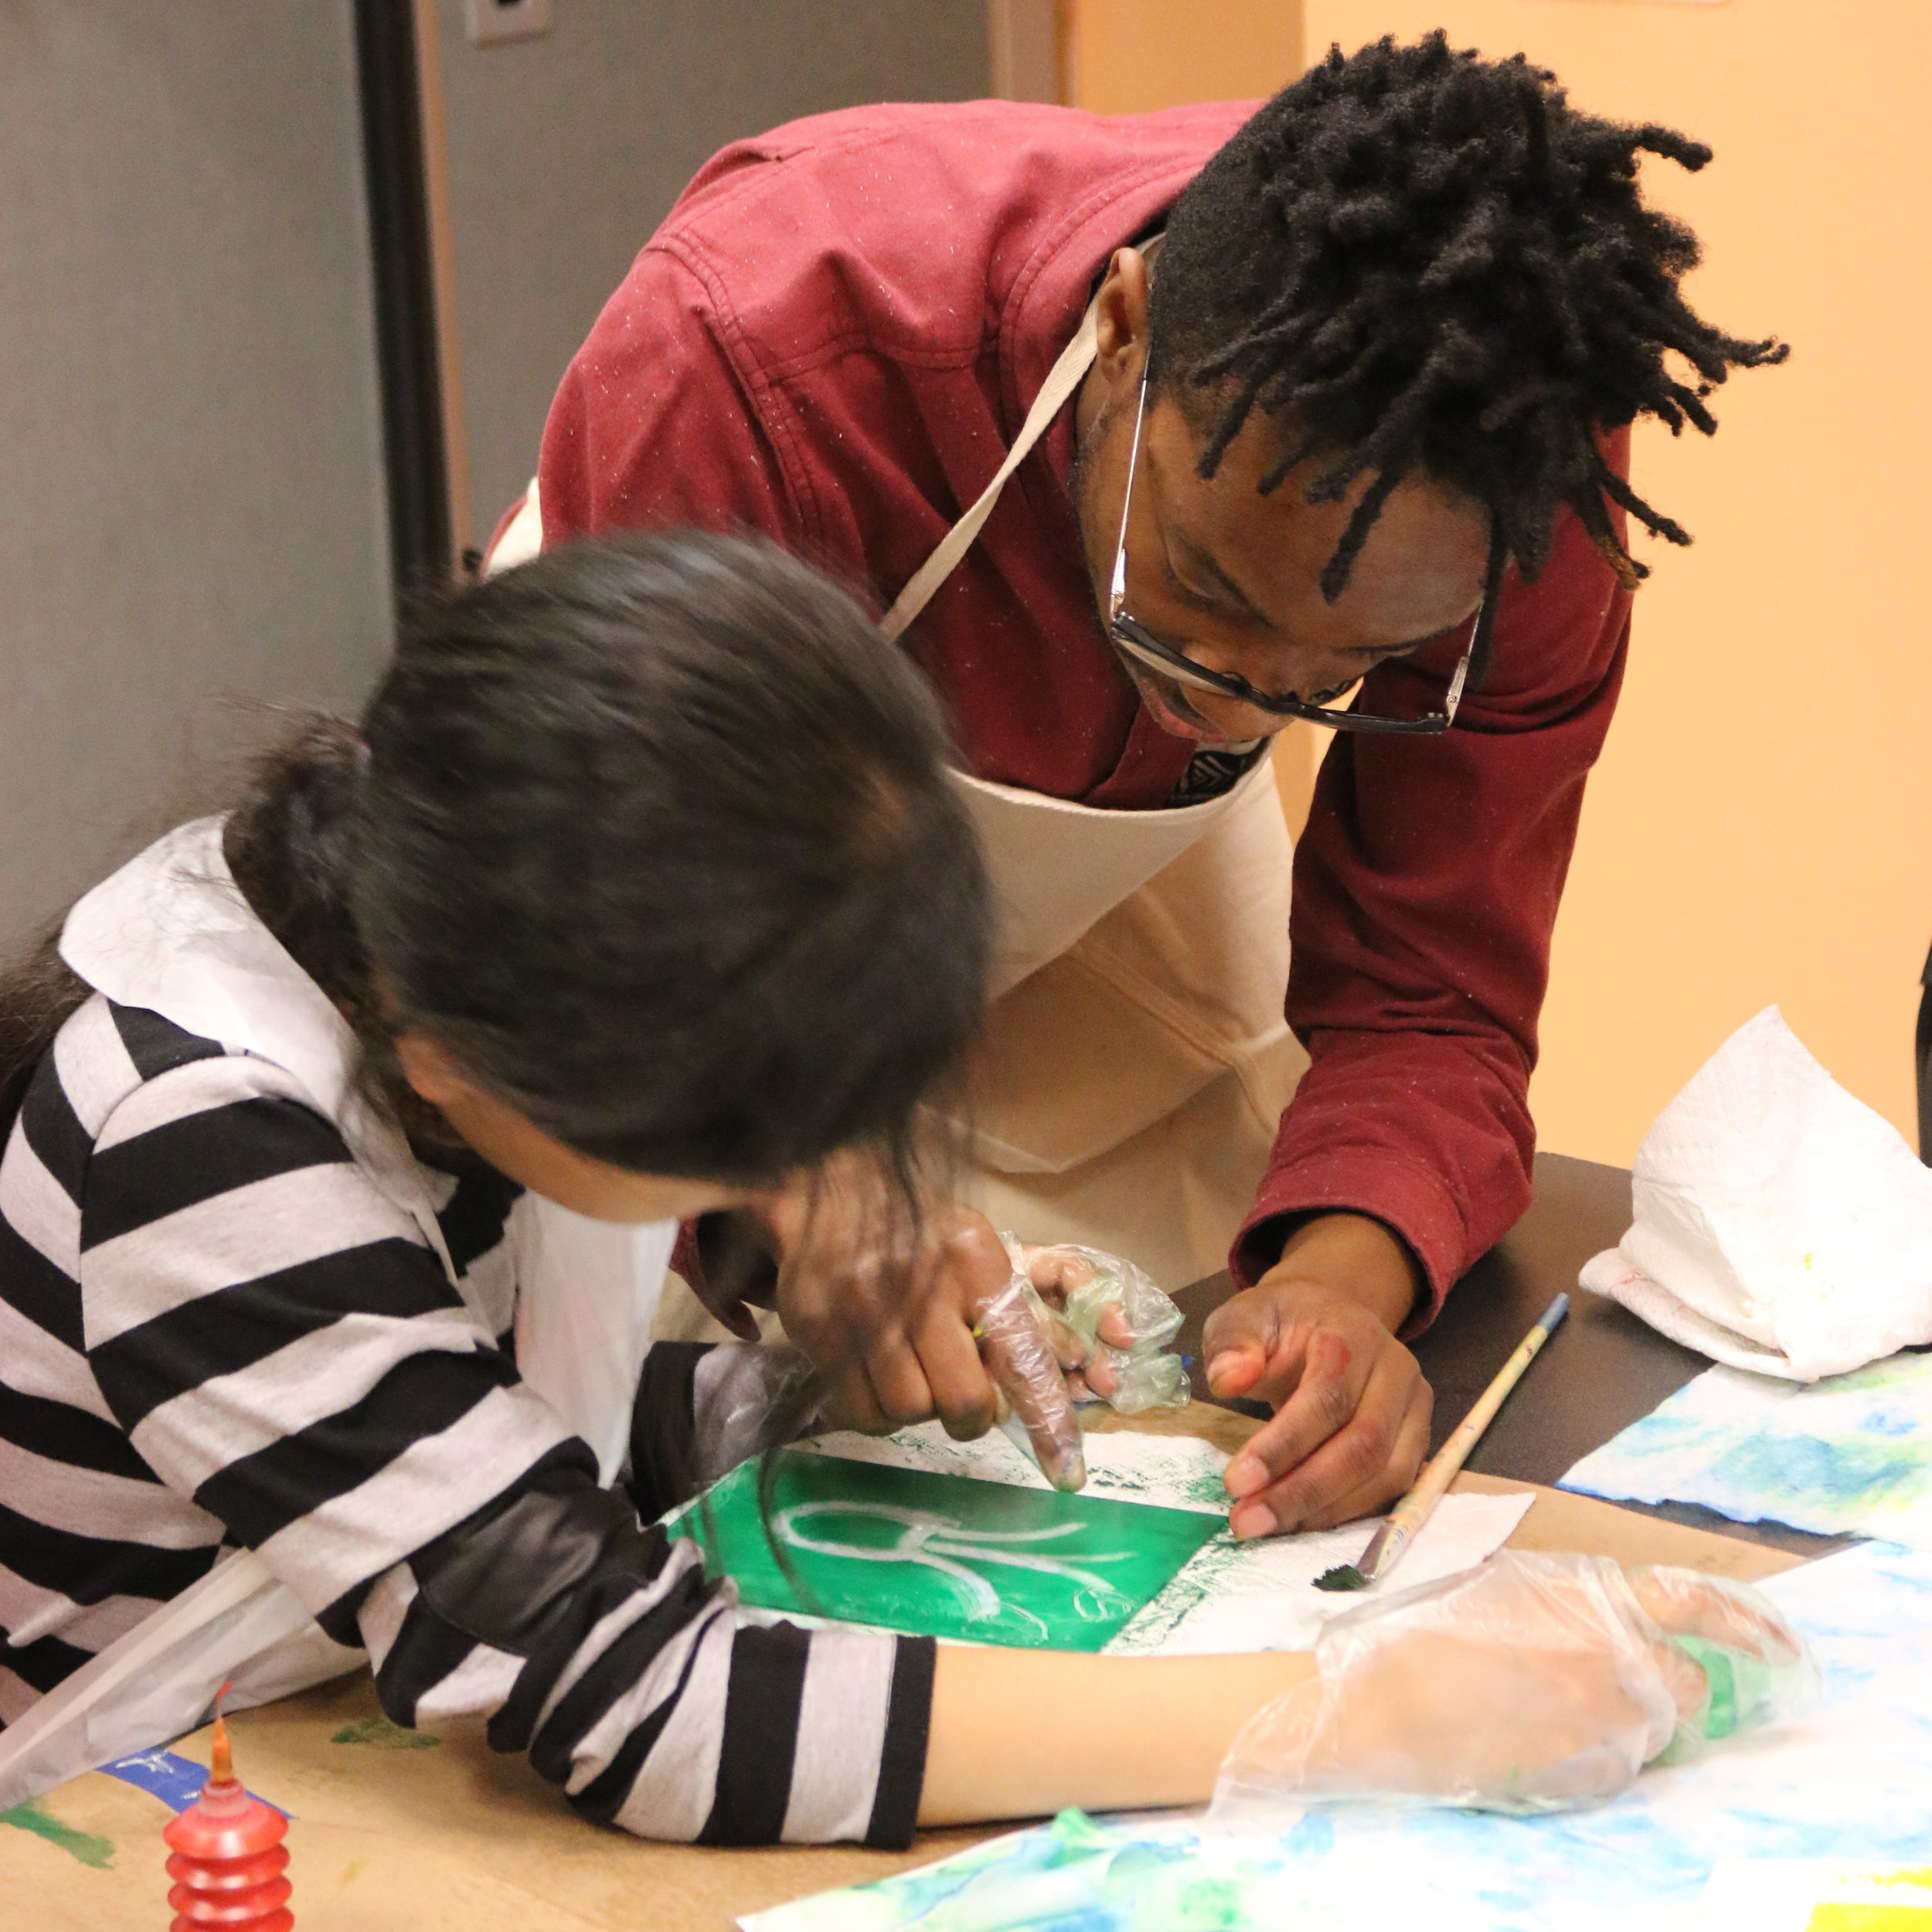 Off-site outreach - Since 2015, IPCNY has partnered with the Stanley M. Isaacs Neighborhood Center in Harlem to offer three annual printmaking workshops to elementary school children in its after-school program. We are open to new partnerships! Reach out below.